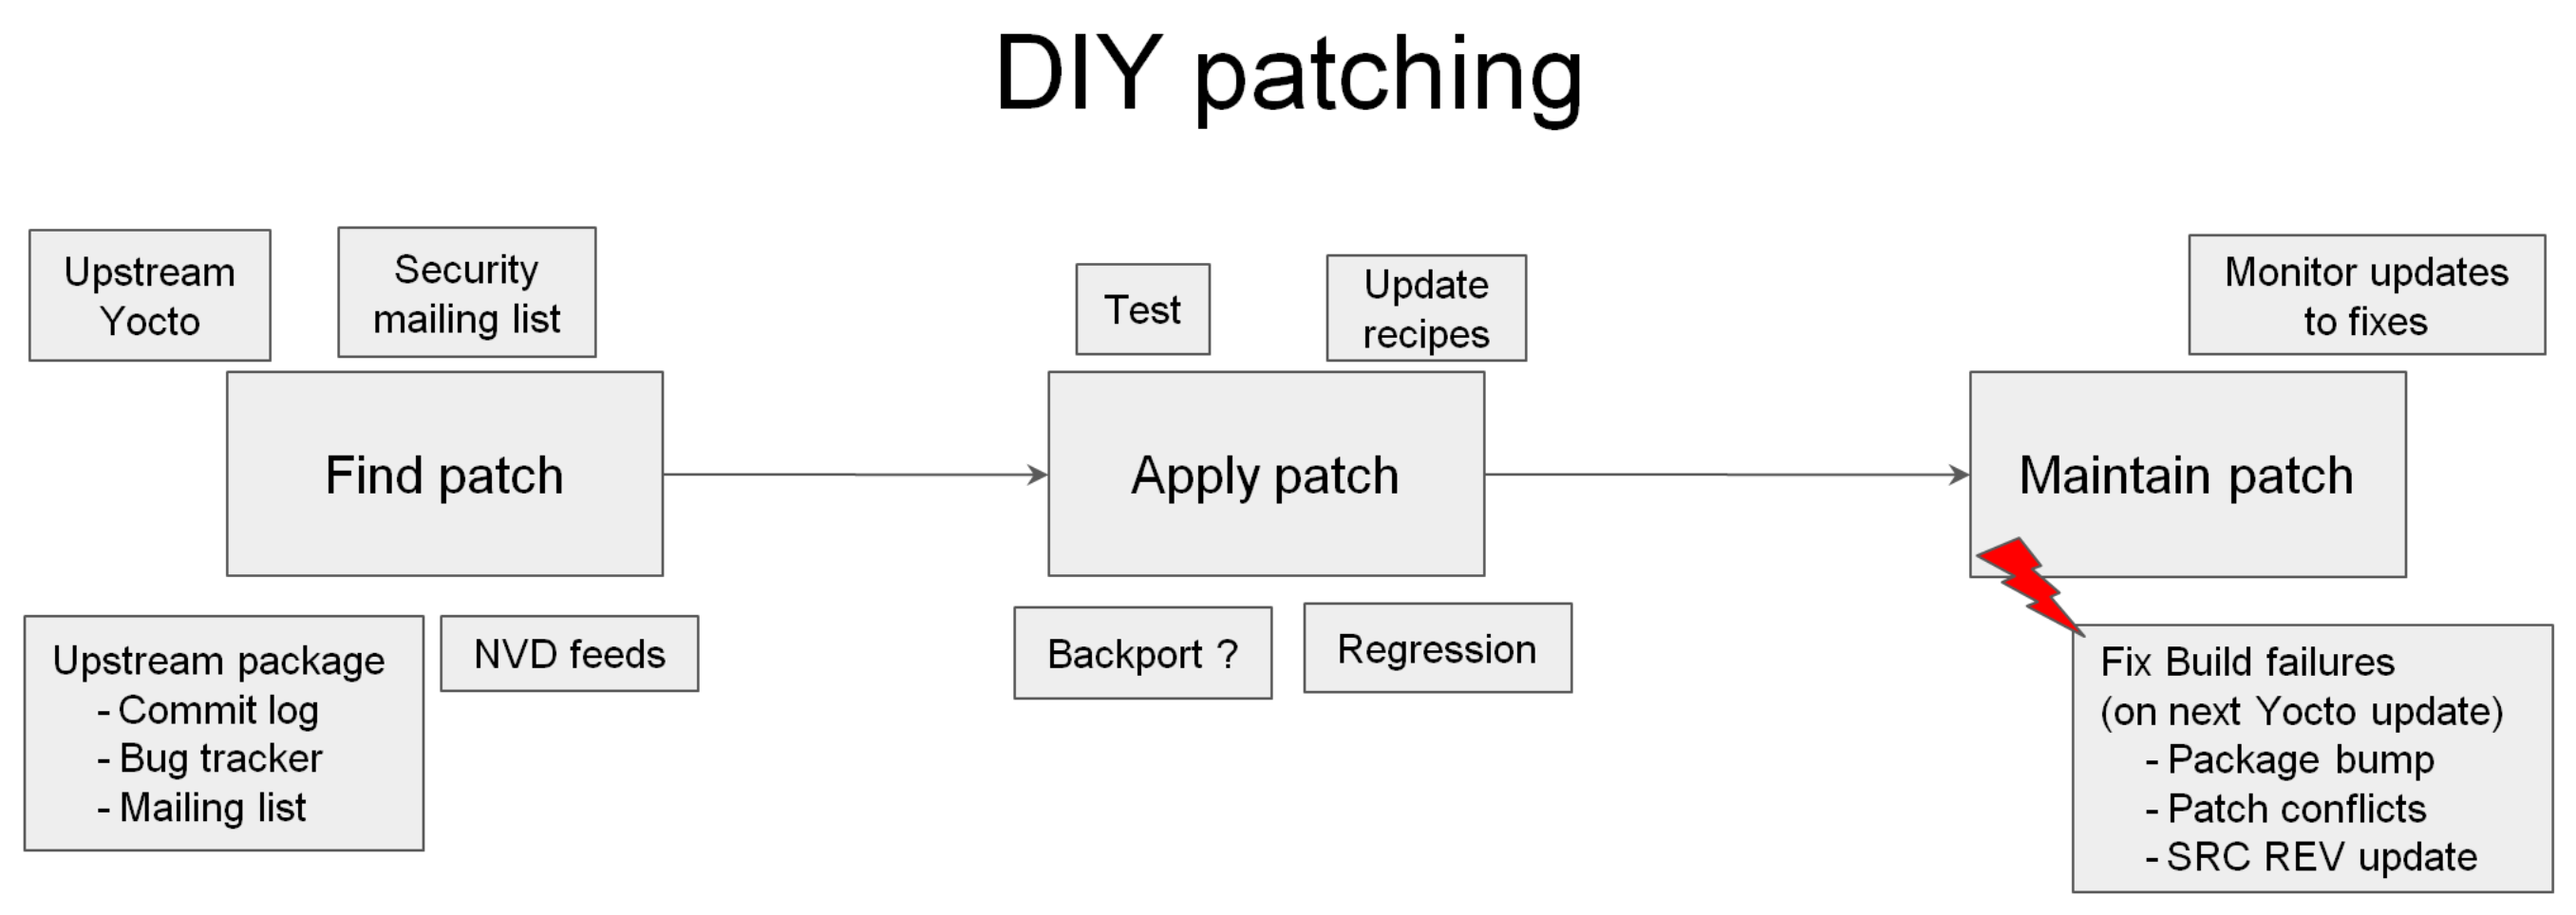 DIY security vulnerability patching